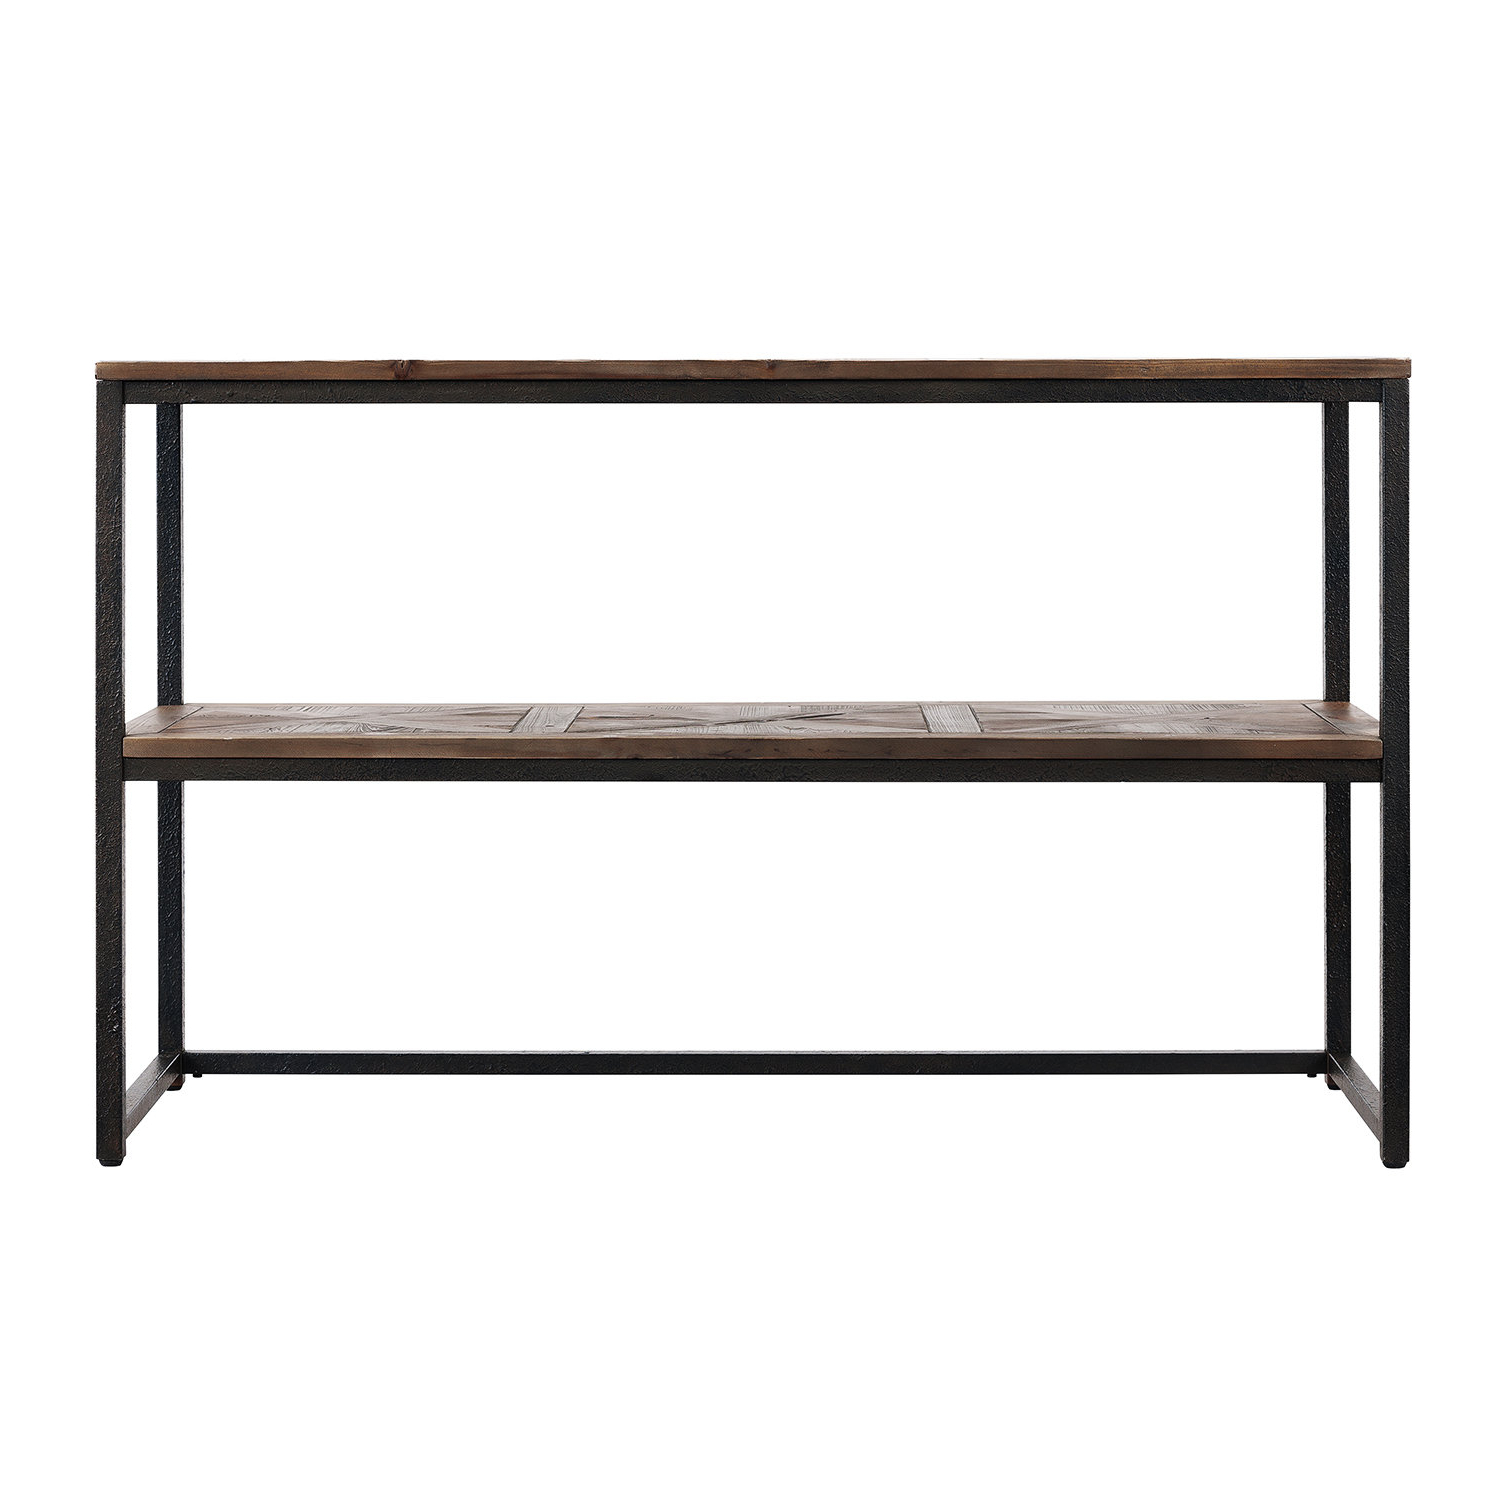 Console Tables Shabby Chic | Wayfair.co.uk For Mix Agate Metal Frame Console Tables (Gallery 13 of 20)